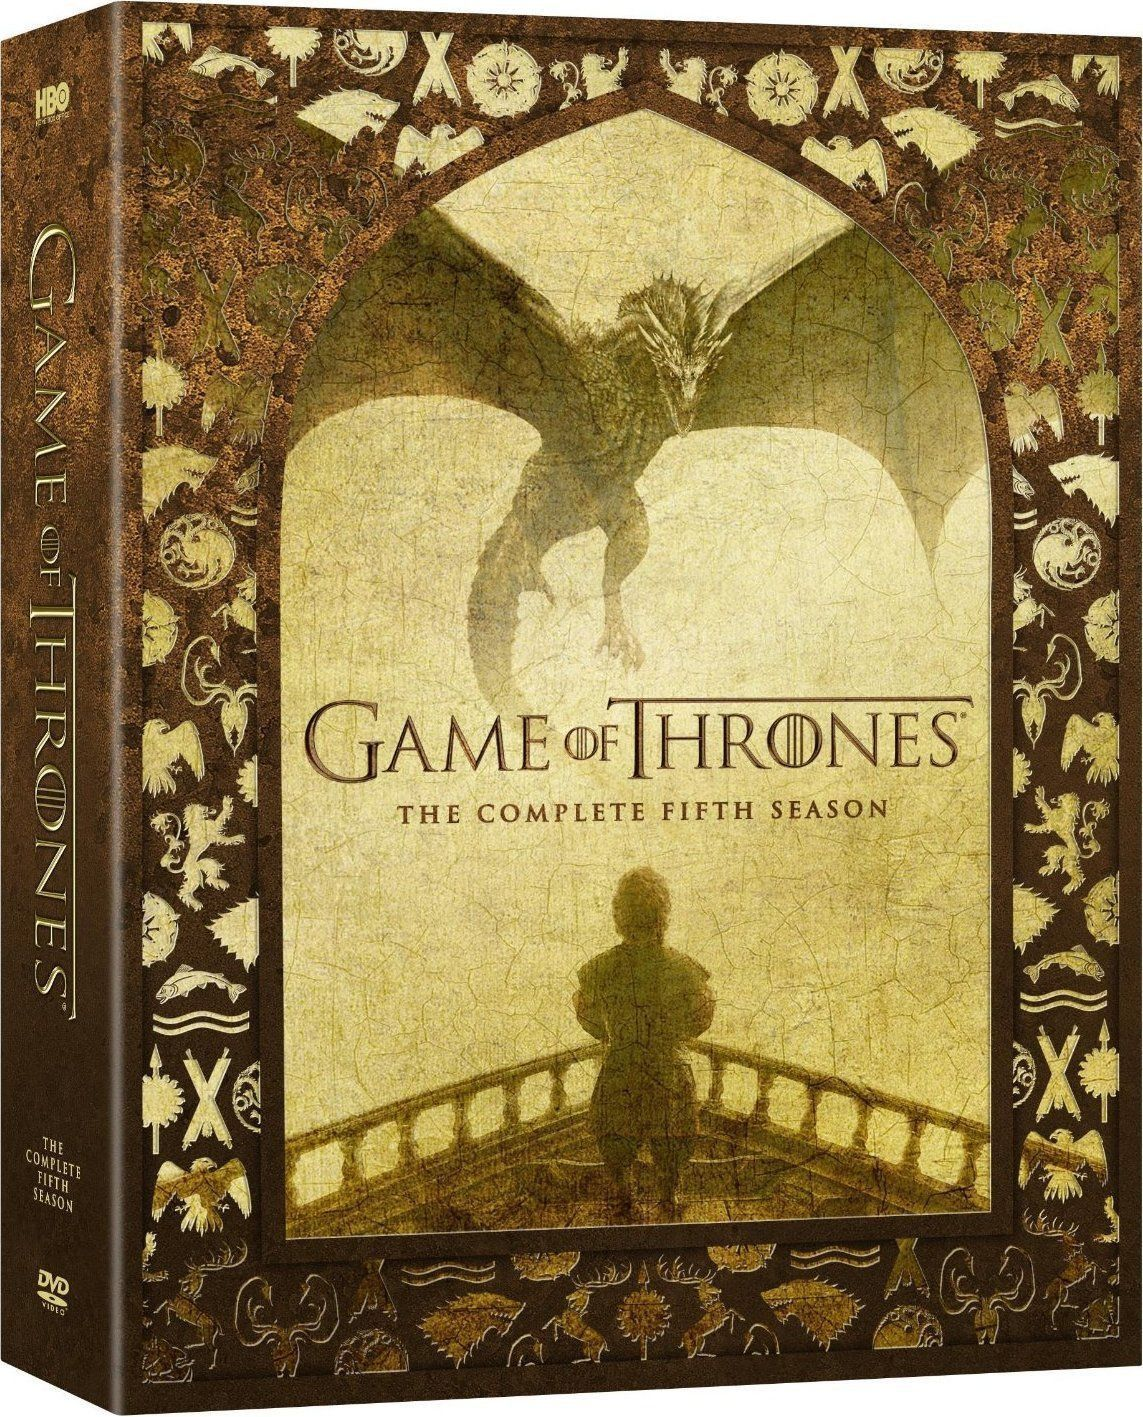 Great gift idea for anyone who loves Game of Thrones